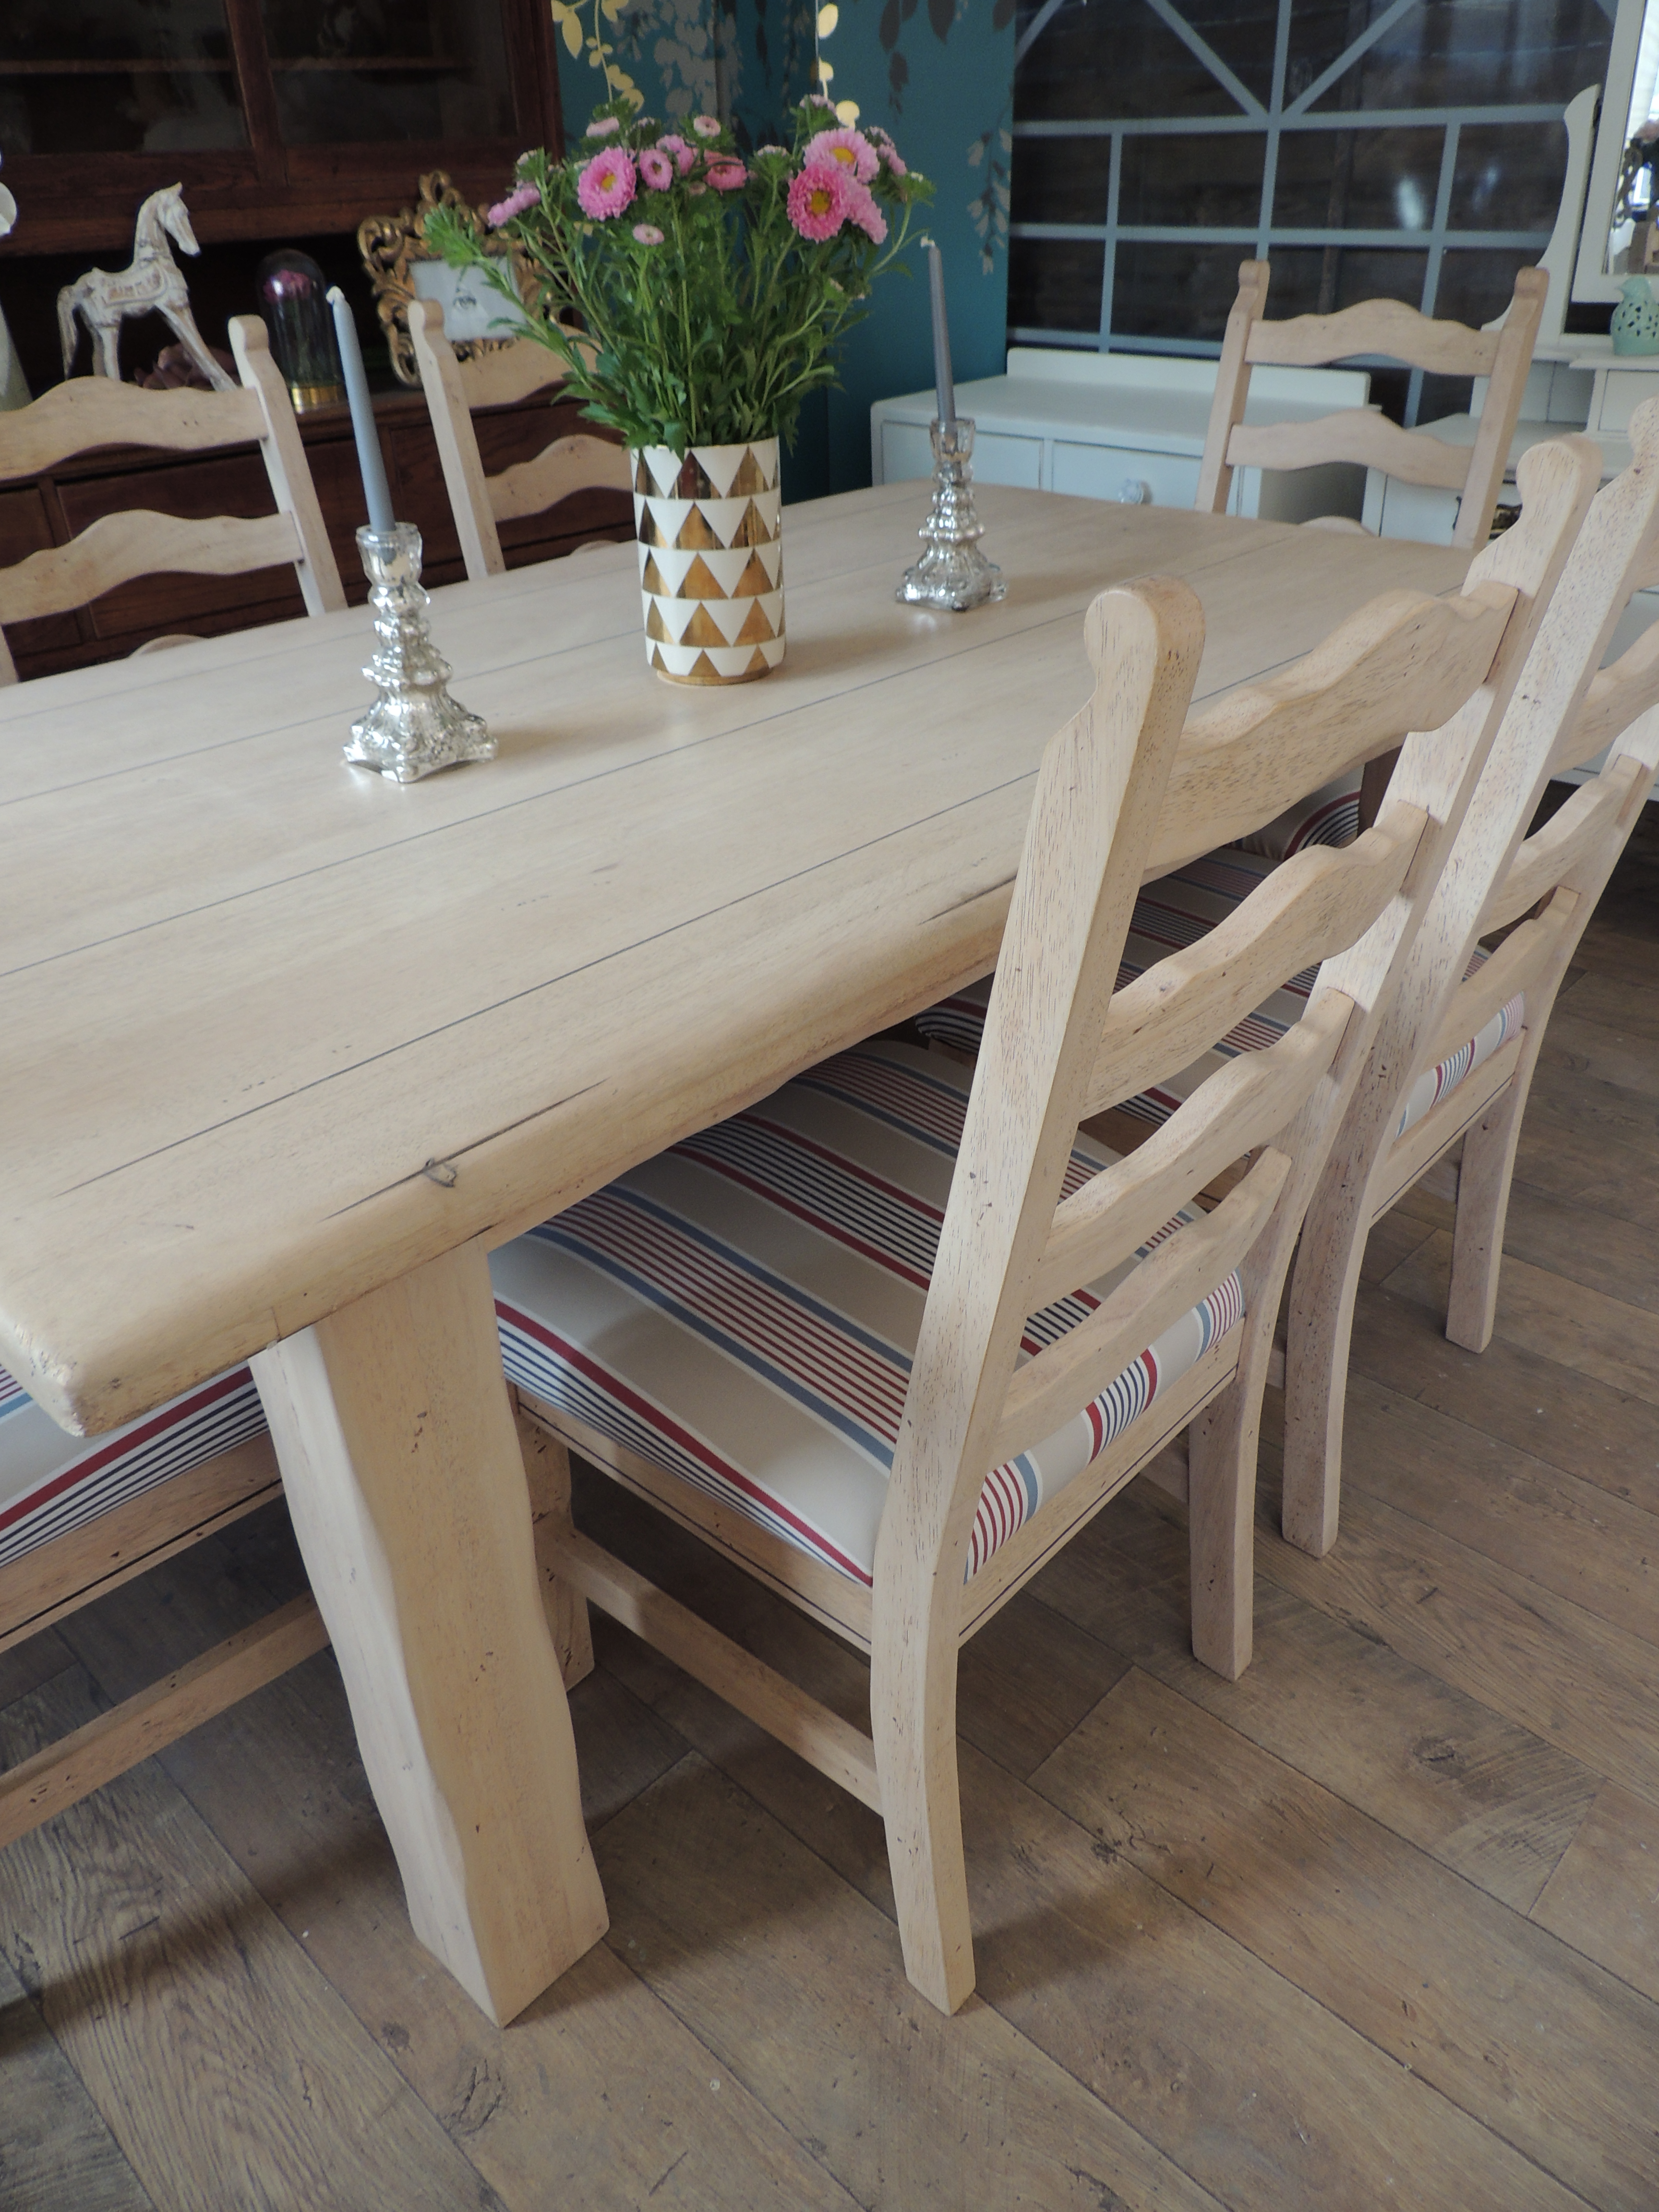 239Lovely rustic farmhouse style dining table with six chairs